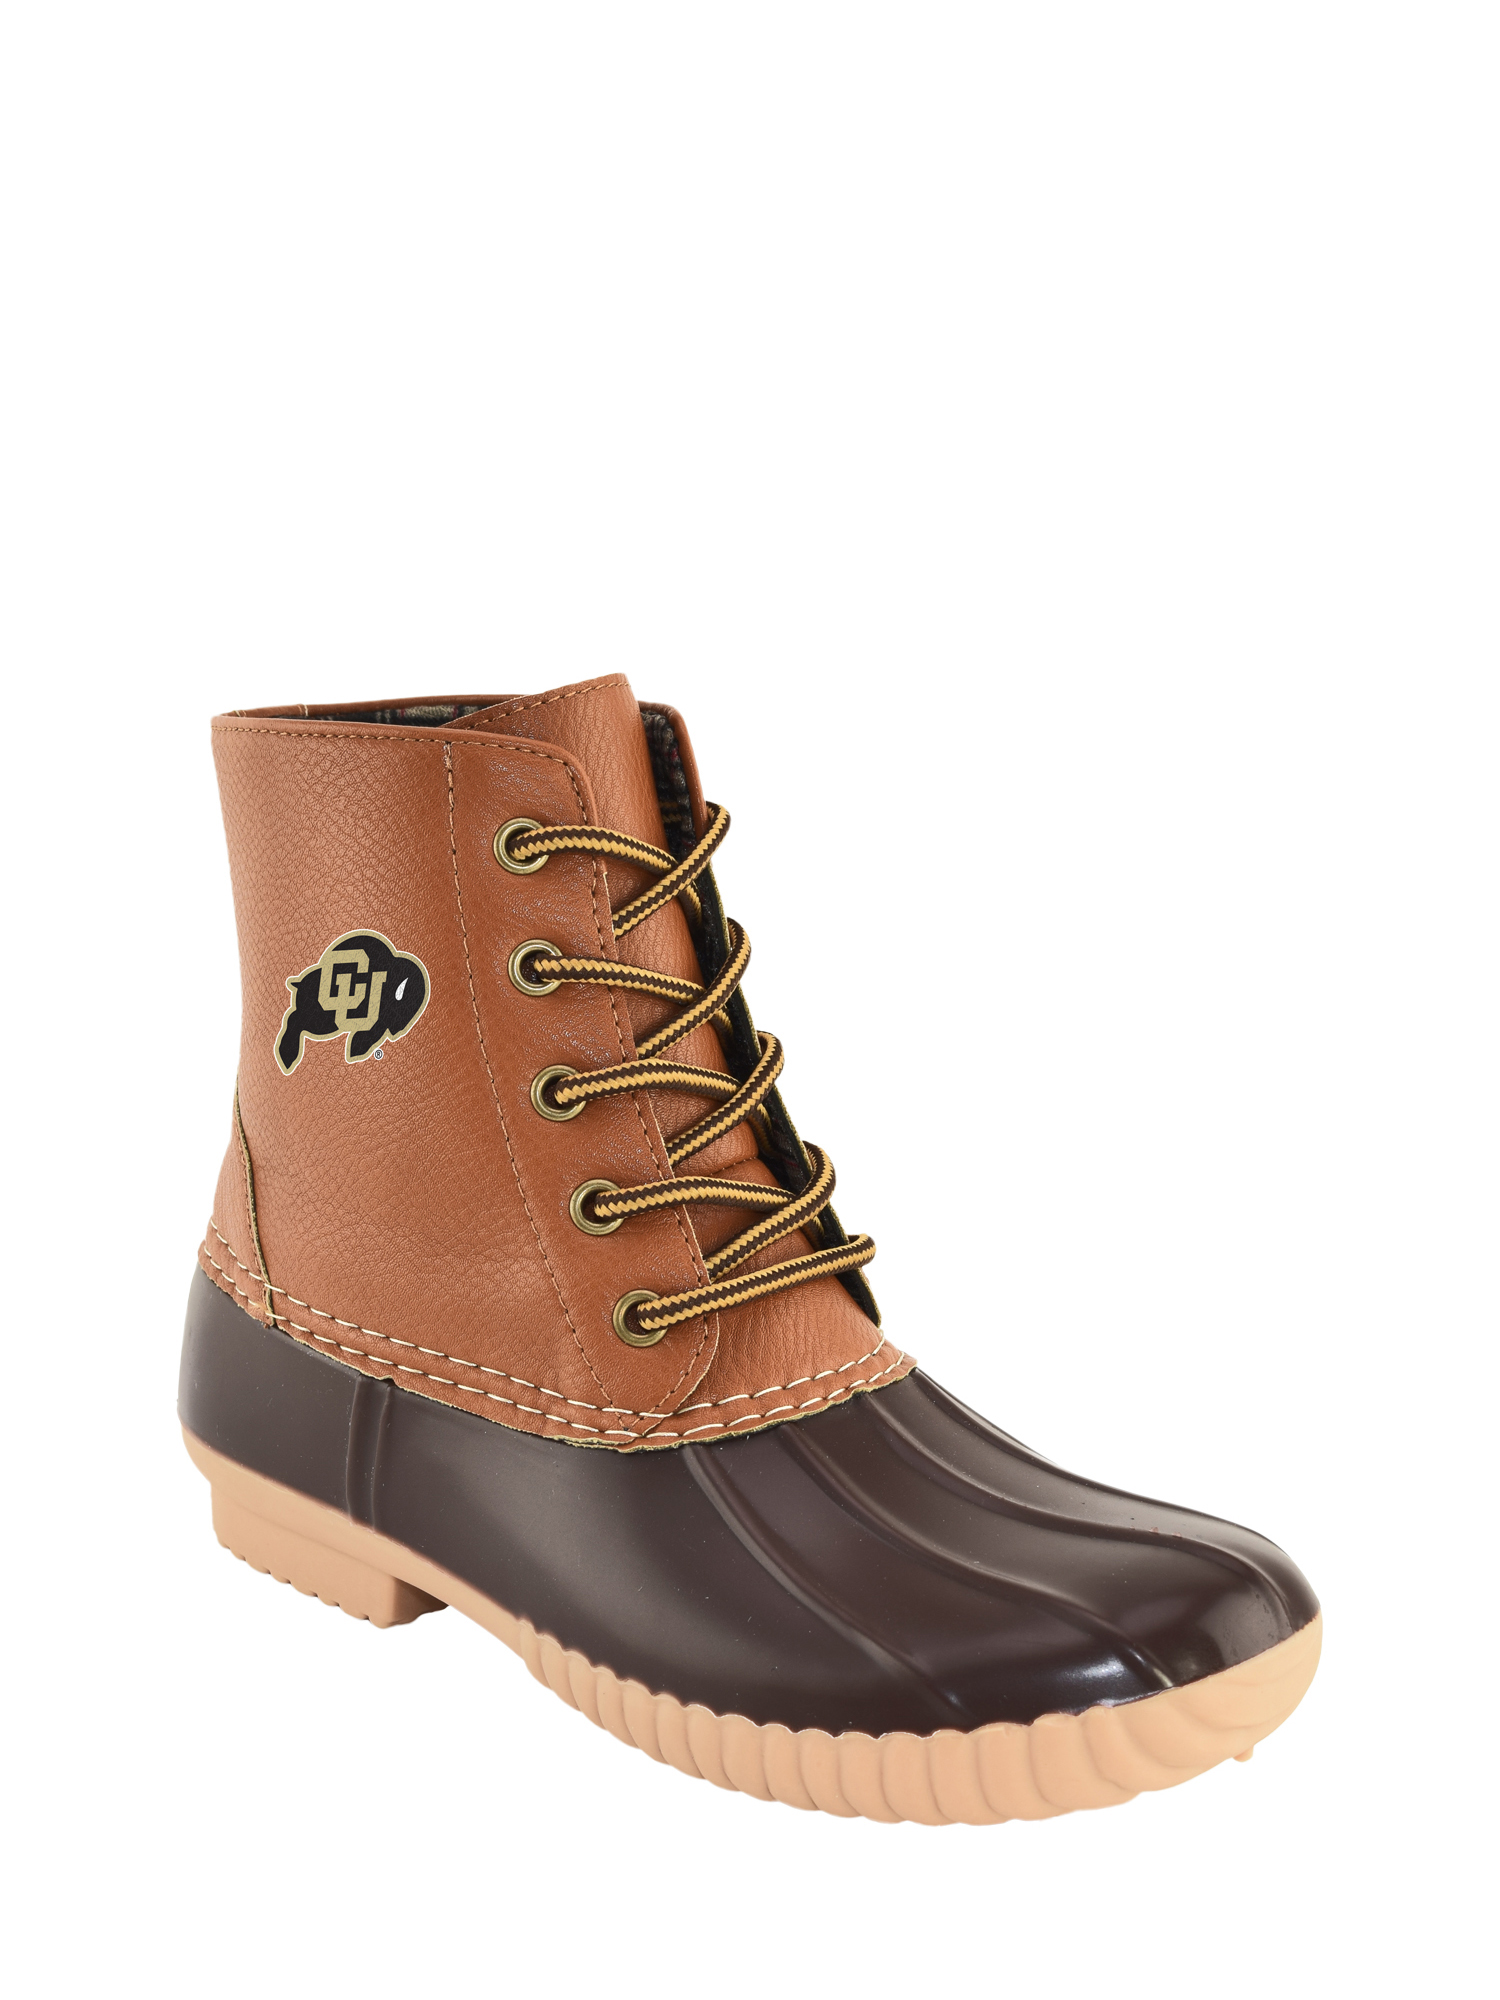 NCAA Women's Colorado -High Duck Boot